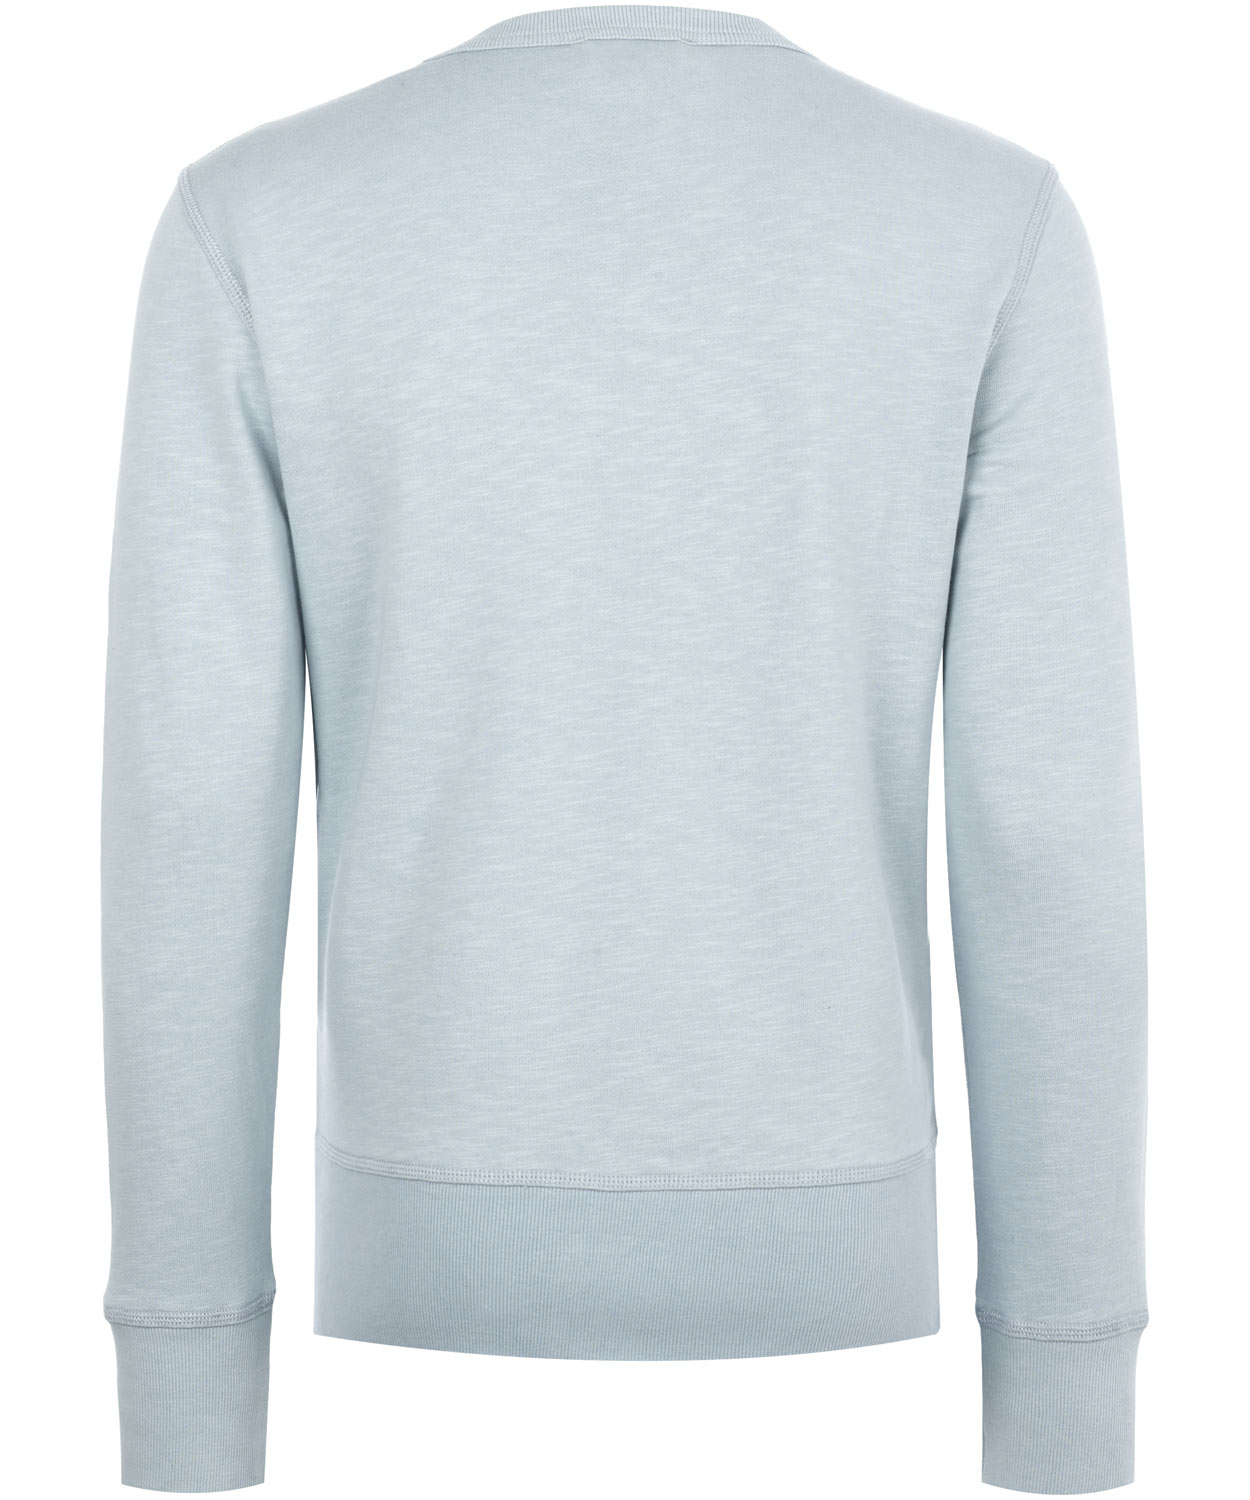 YMC  Terrycloth Crew Neck Jumper in Blue for Men